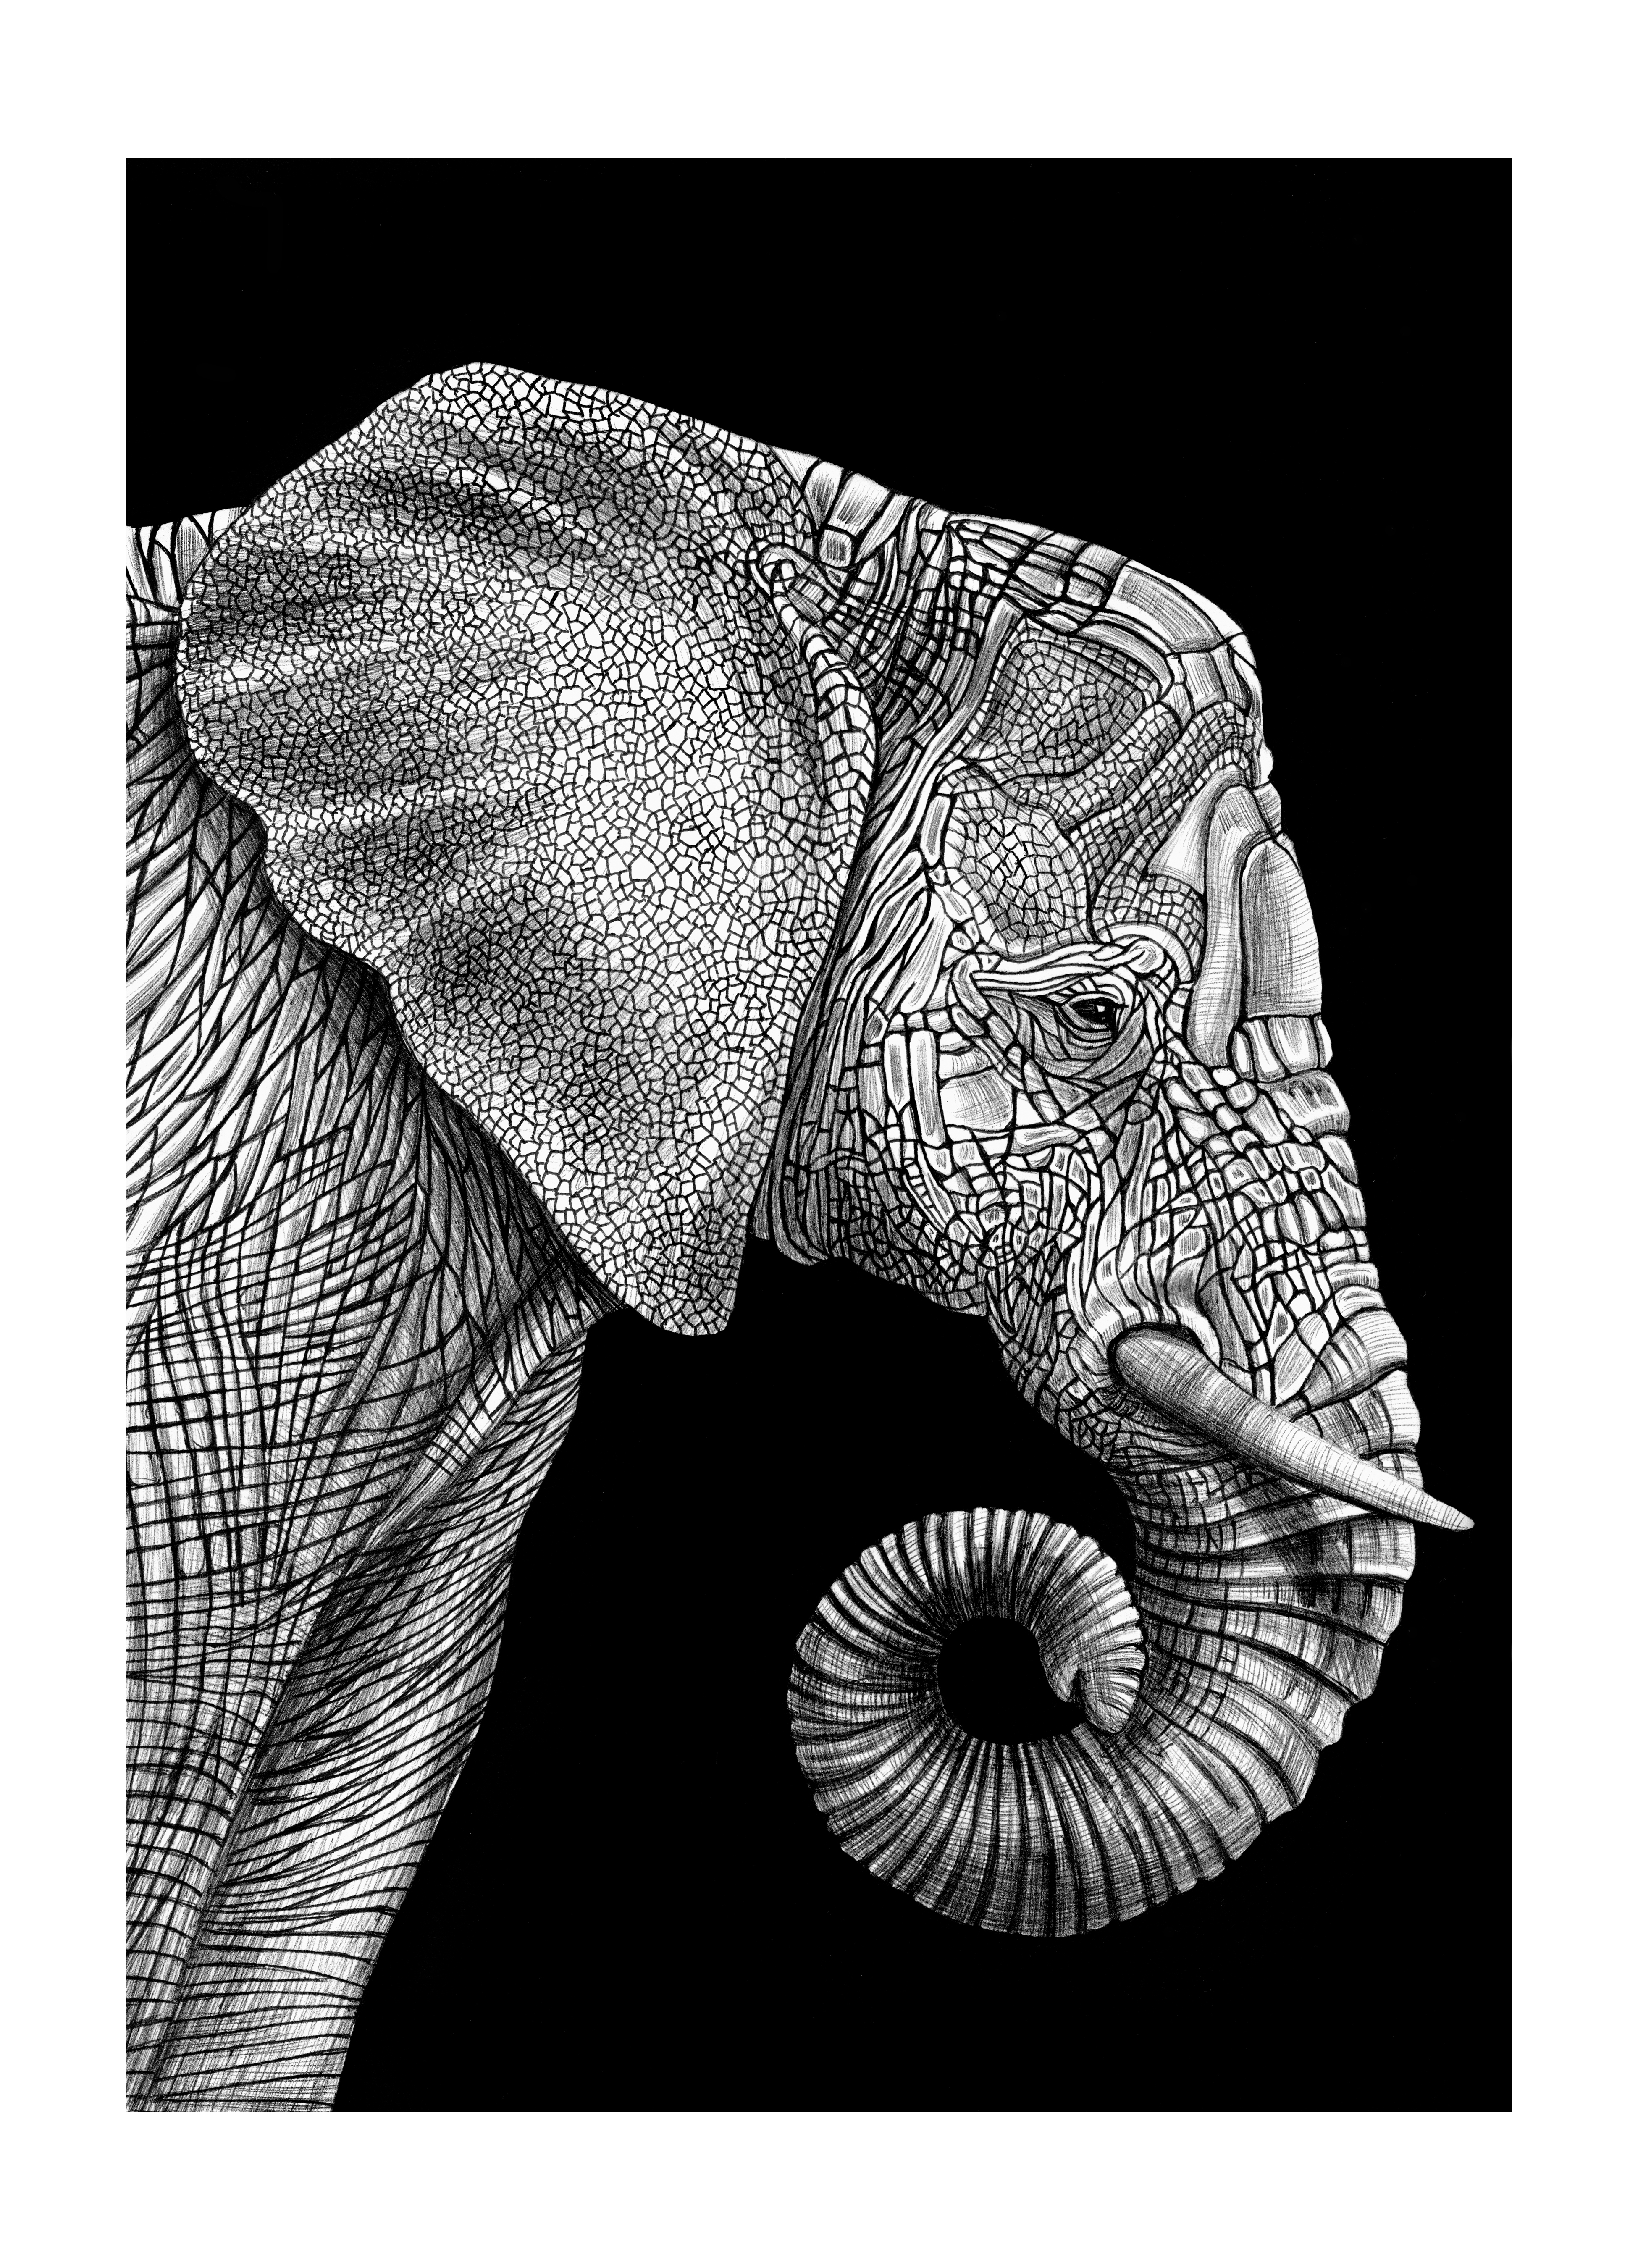 essay animal a beast of a literary magazine essay elephant by tim jeffs for more information